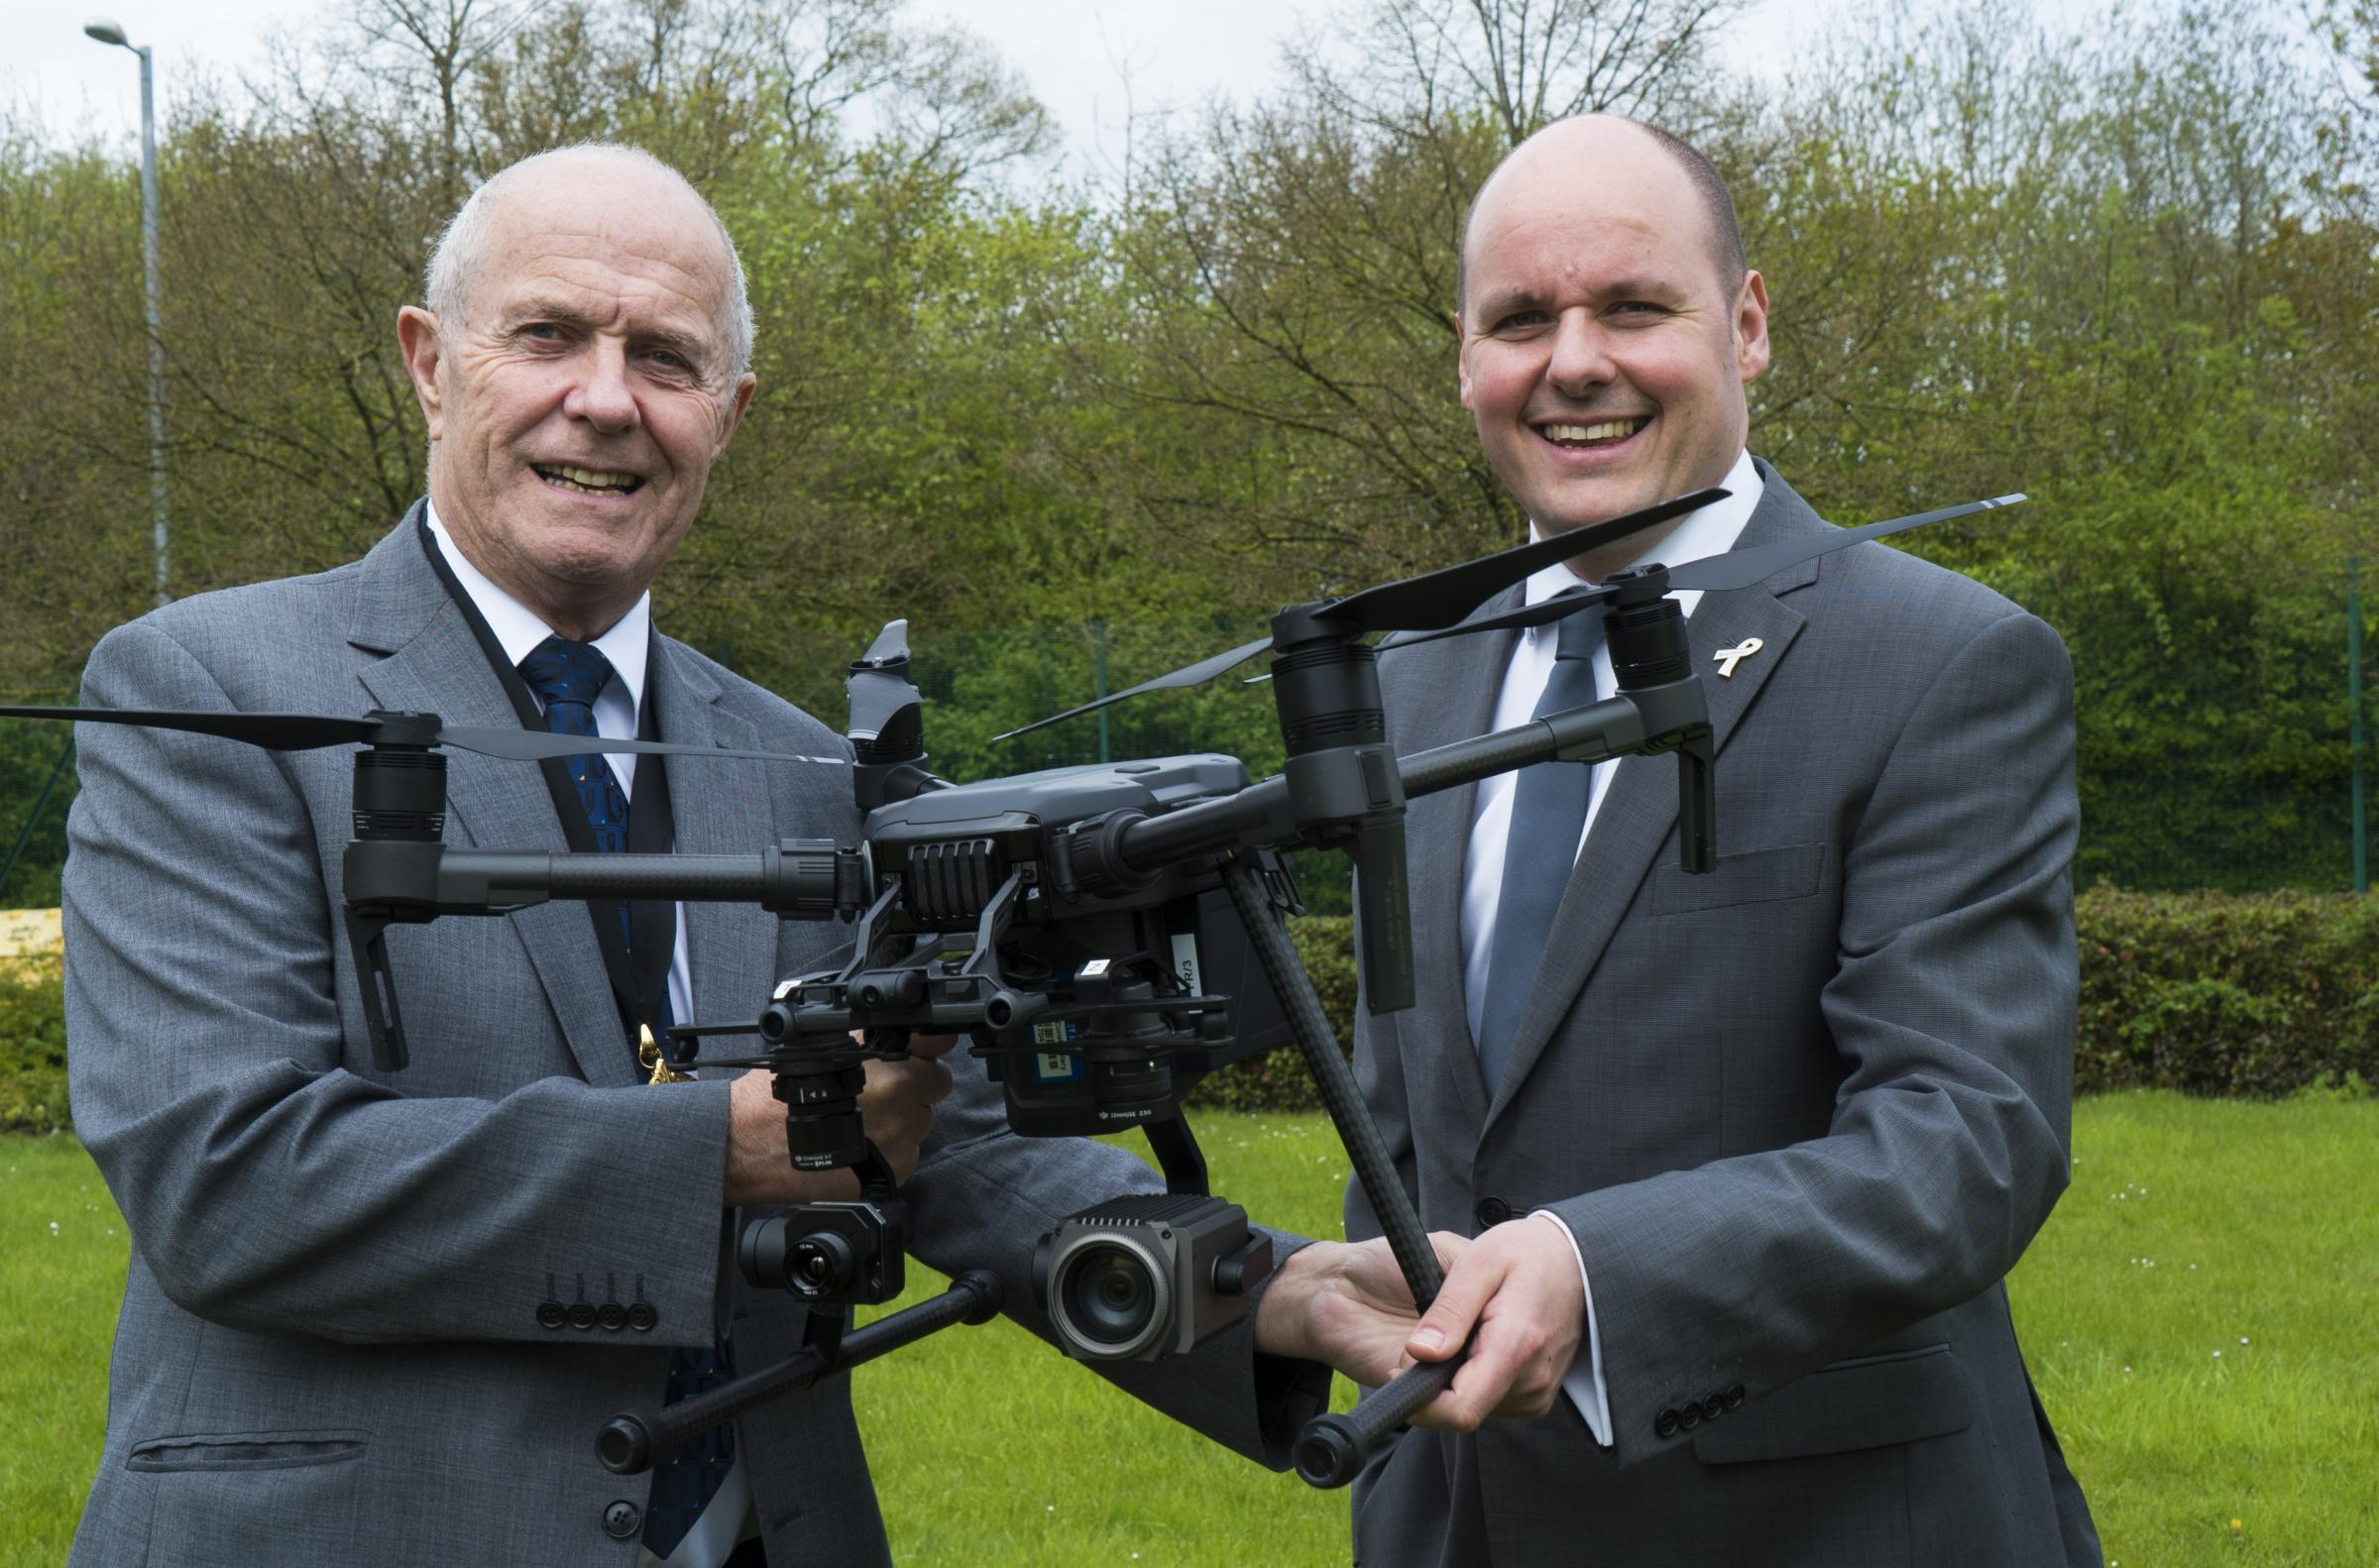 Cheshire Fire Authority chairman Bob Rudd and police and crime commissioner for Cheshire David Keane with the new £25,000 drone.